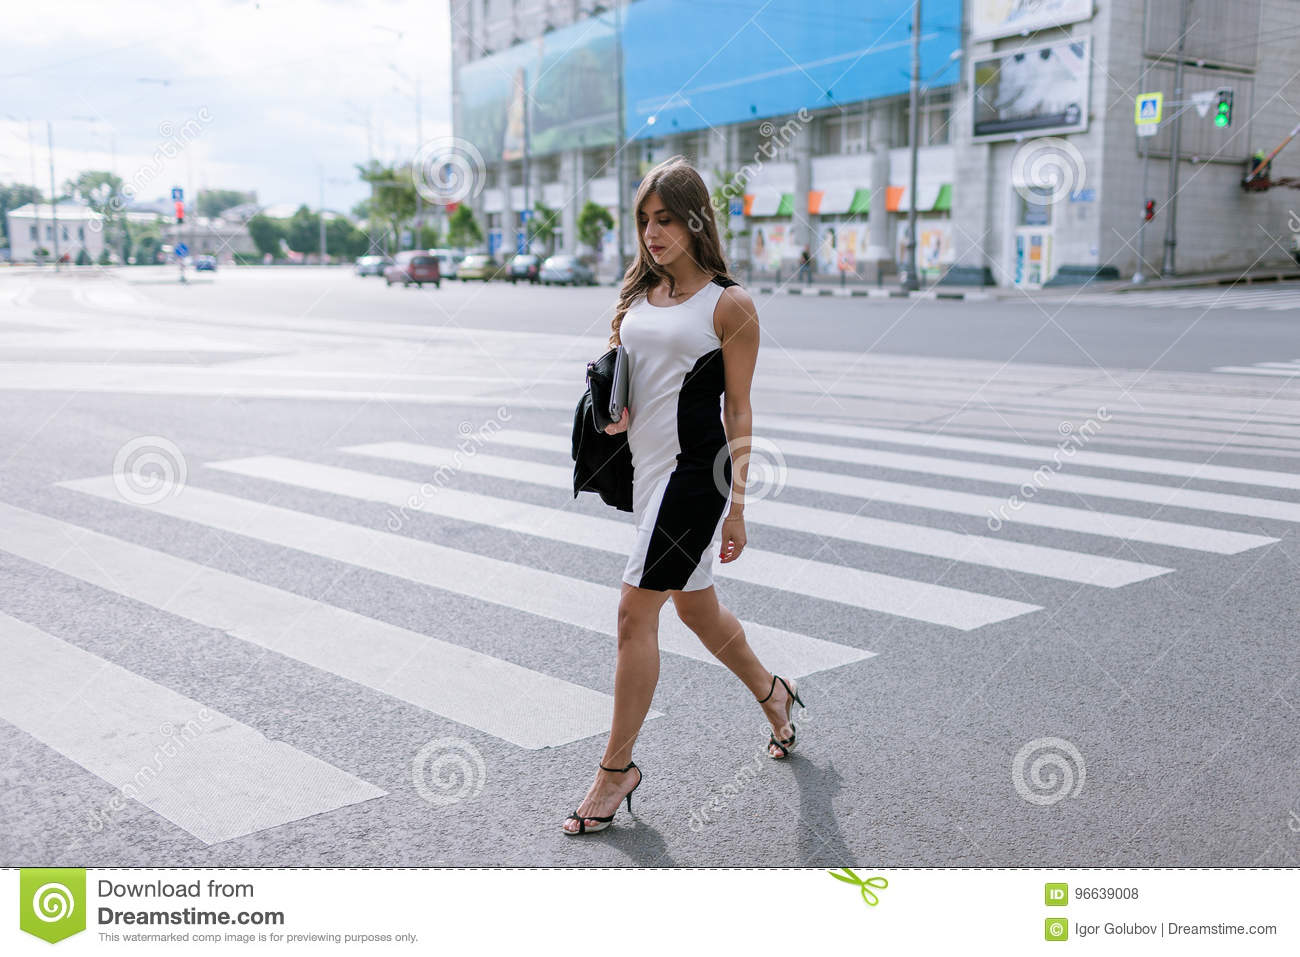 https://thumbs.dreamstime.com/z/young-fashionable-passersby-metropolis-stylish-girl-crossing-road-96639008.jpg